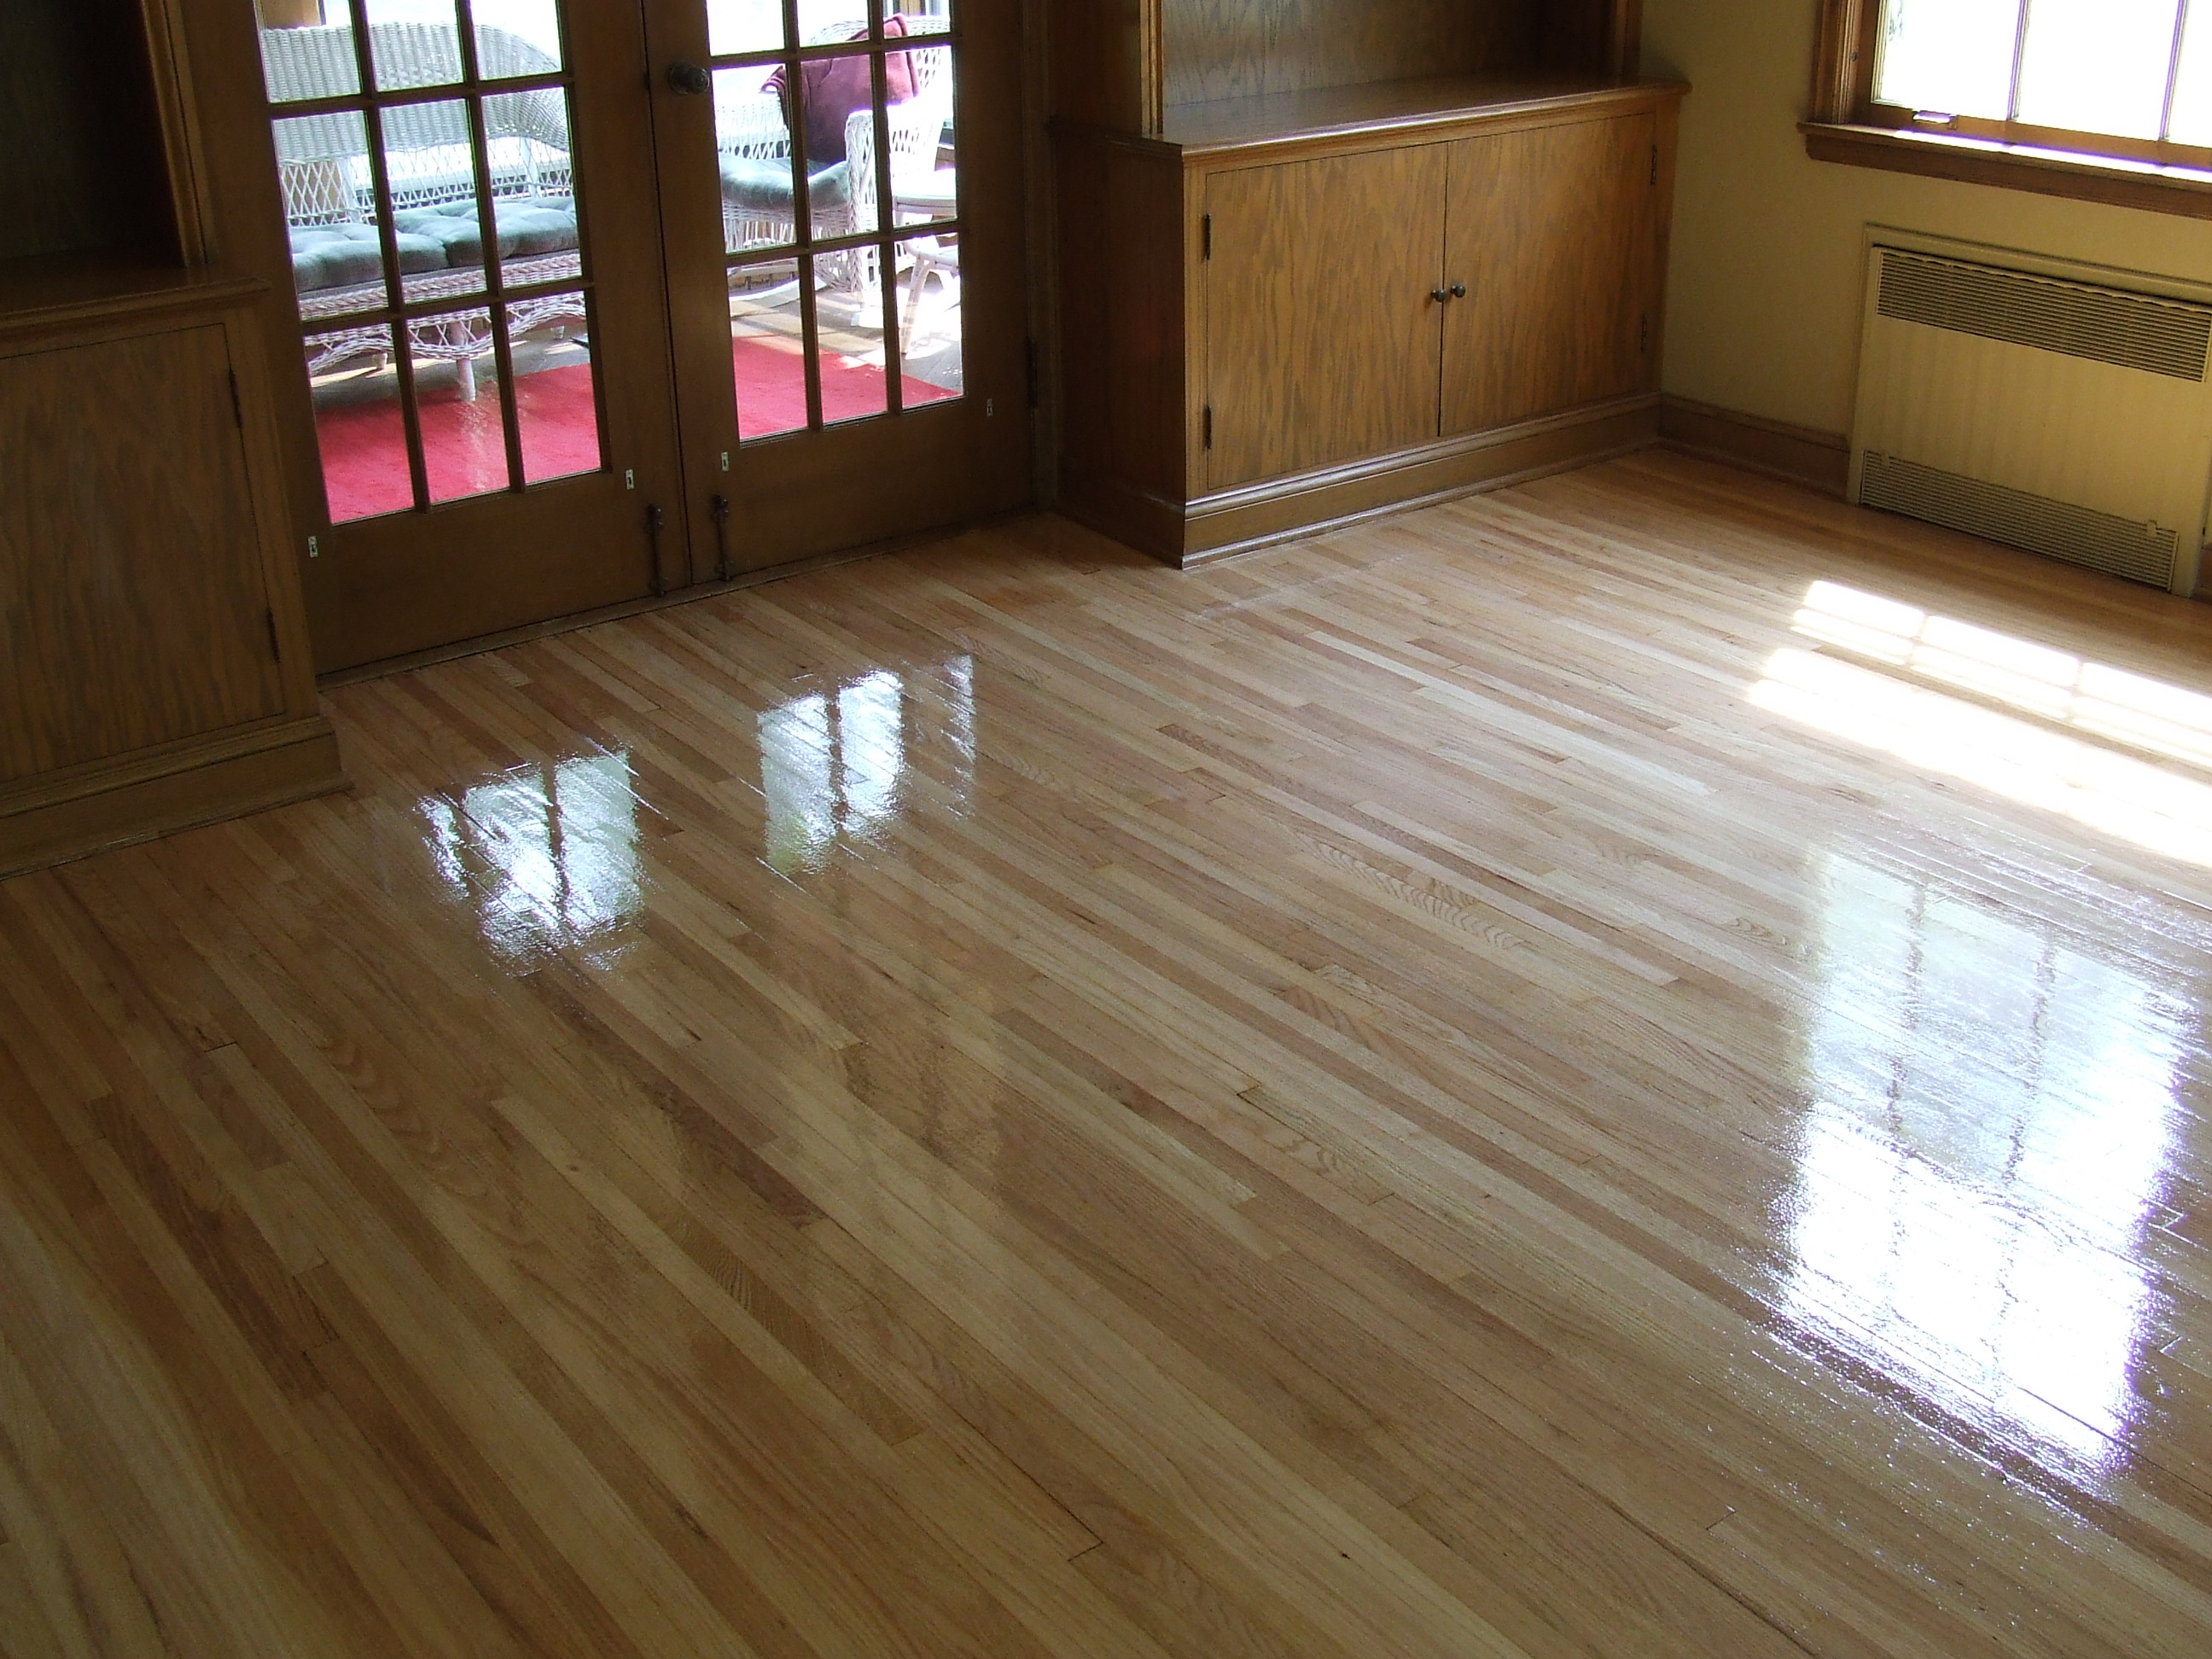 Niagara Hardwood Flooring St Catharines Hardwood Flooring